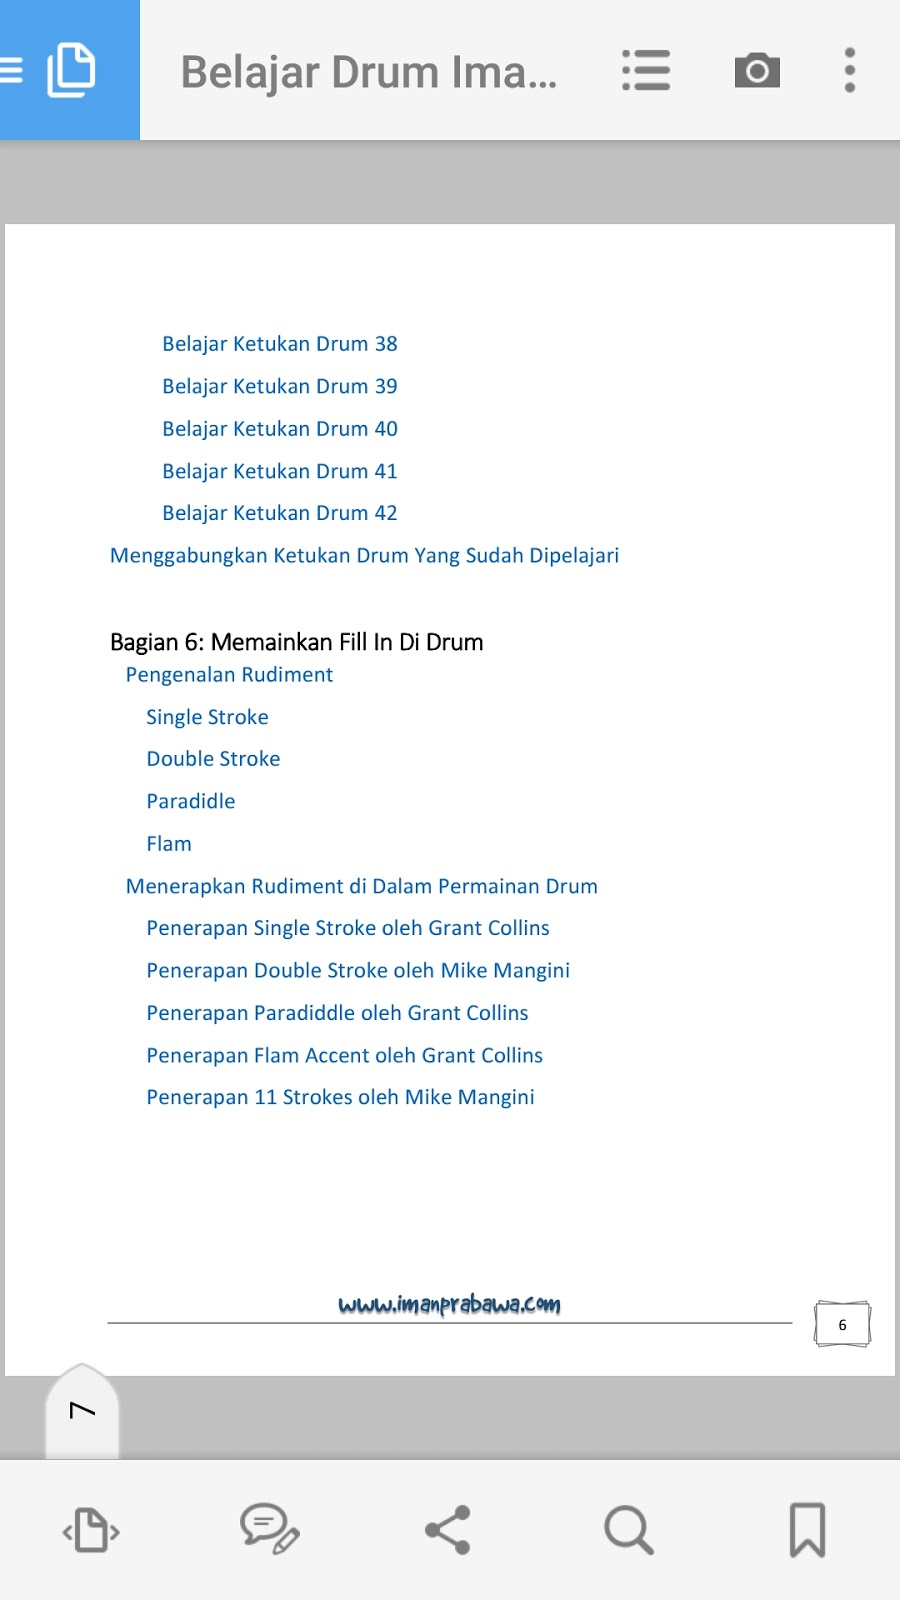 Ebook Iman Prabawa 6